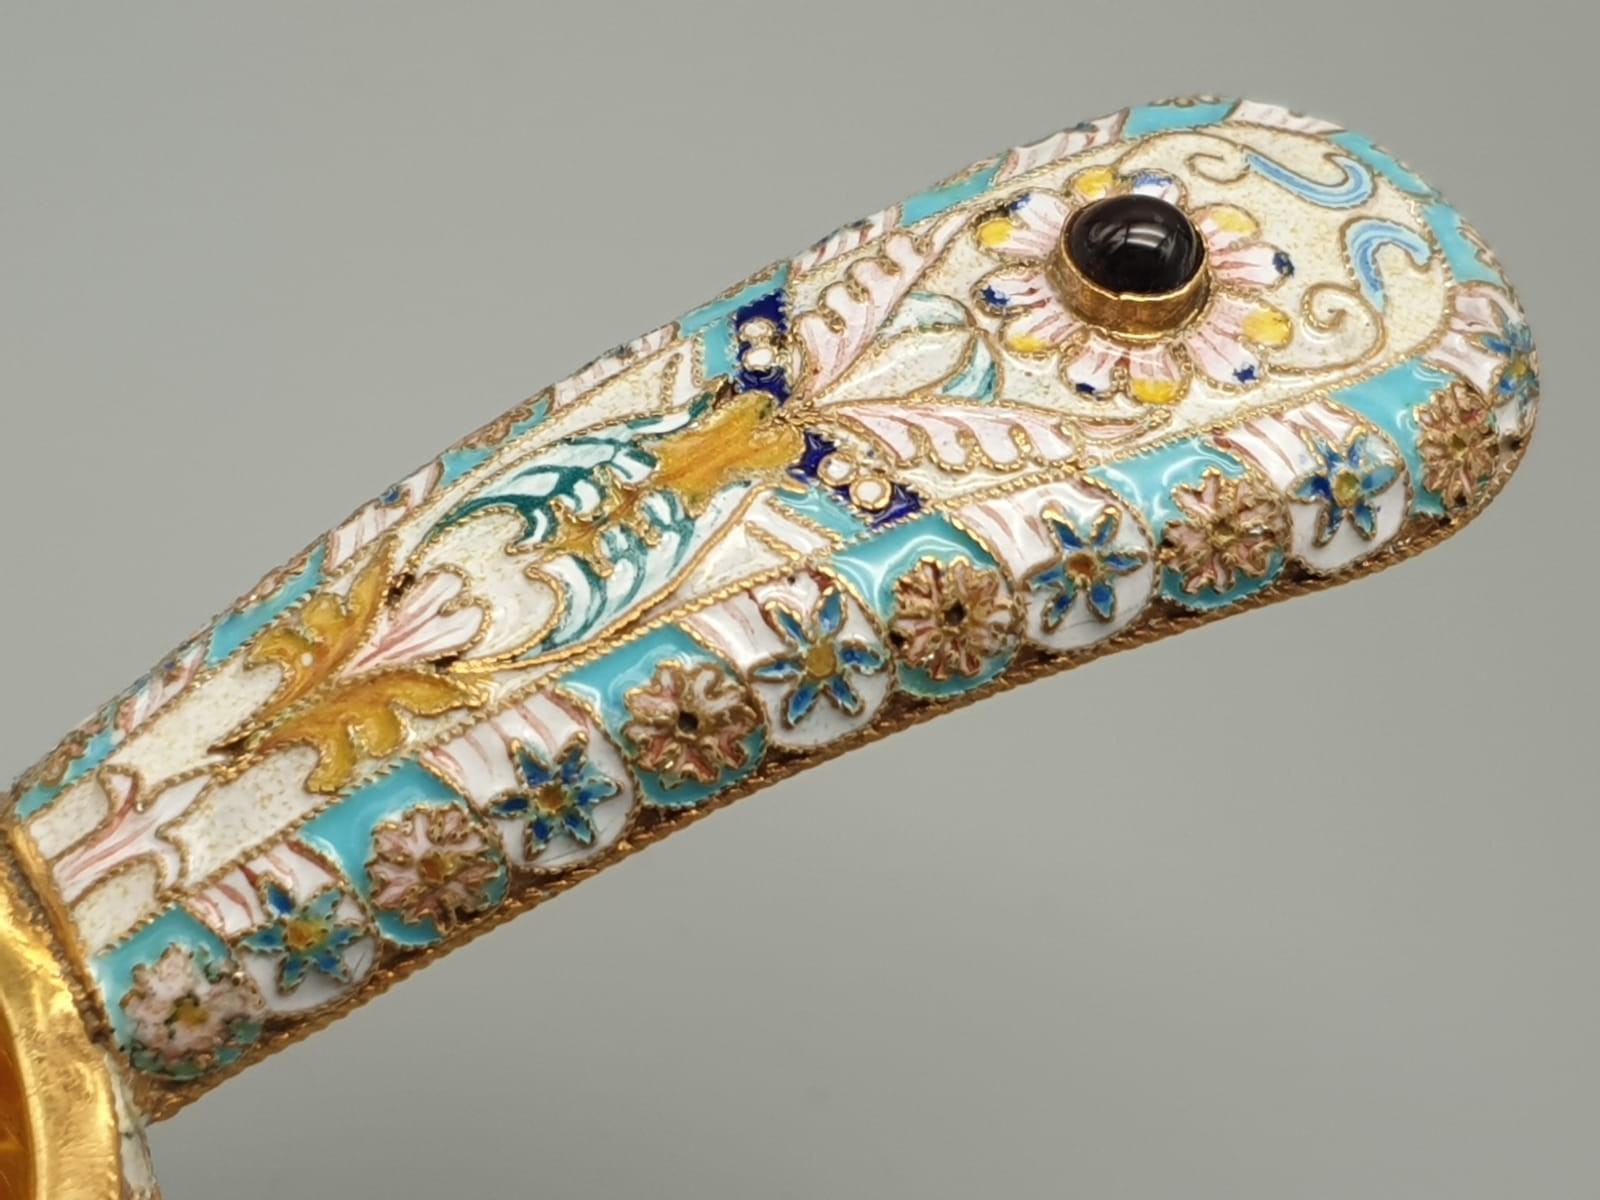 Pair of Russian 20th century silver enamel gemset kavosch bowl in the form of birds, an exquisite - Image 15 of 29